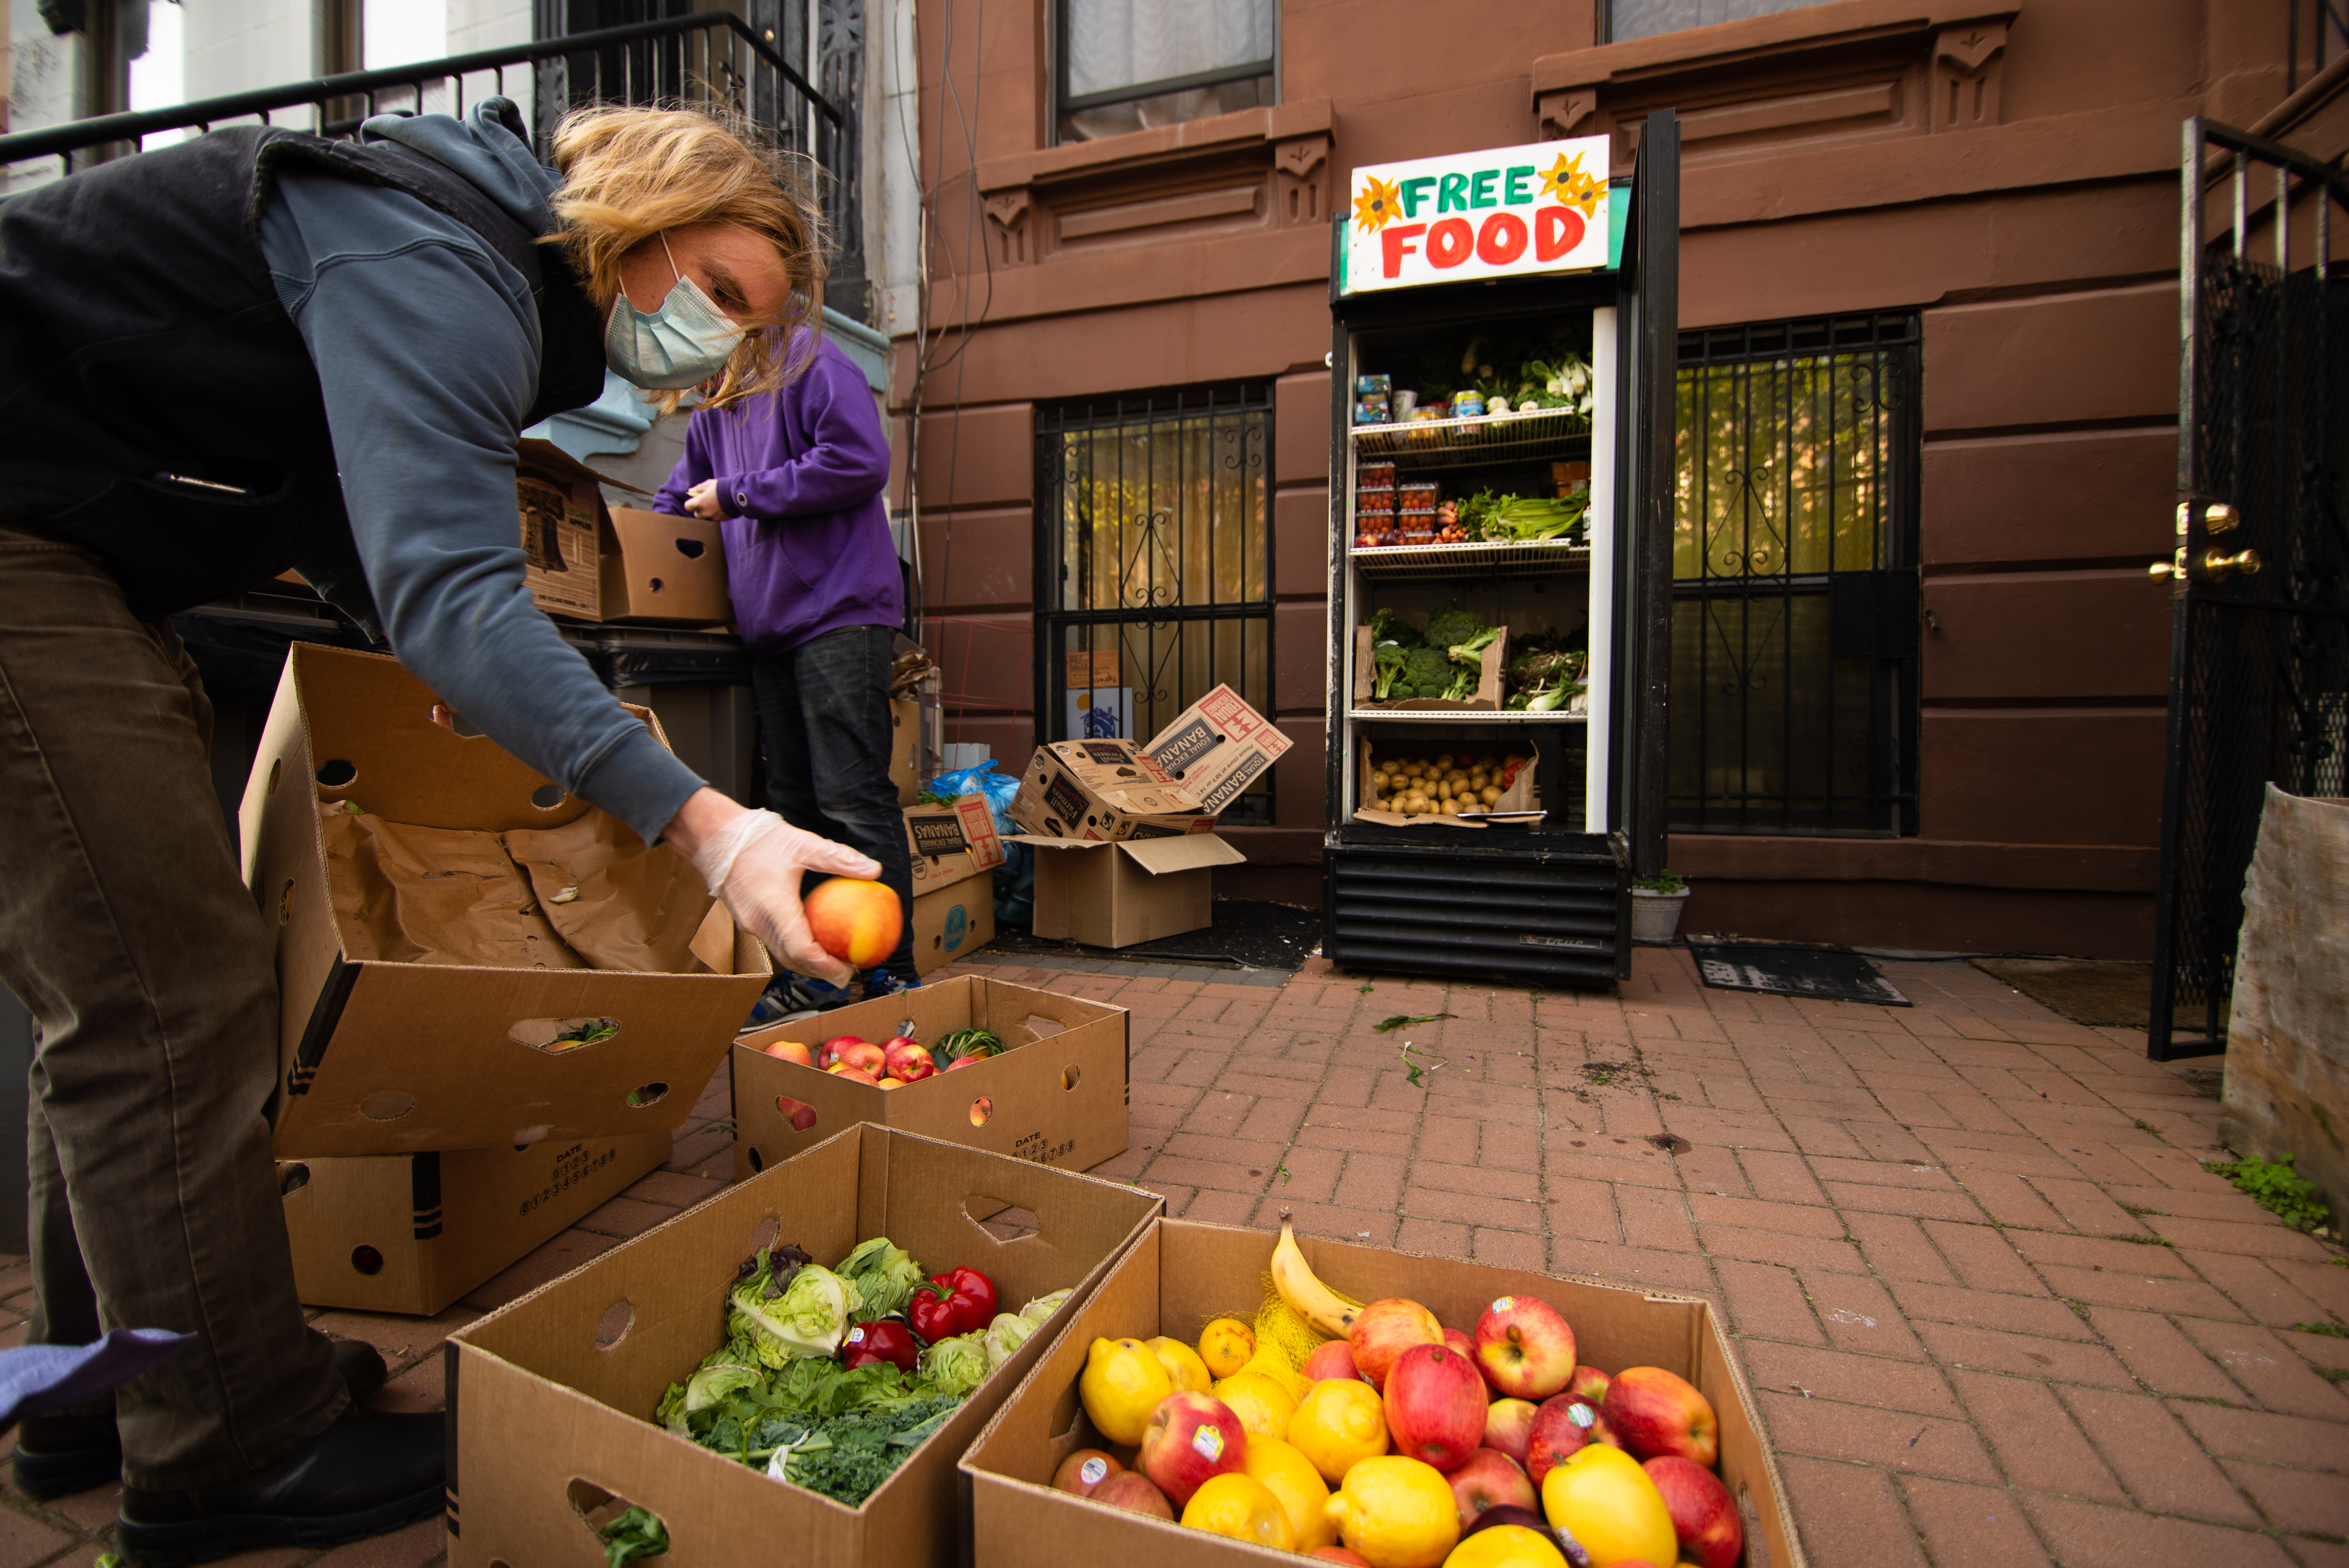 """A glass-front fridge stocked with produce with a sign that says """"free food"""" in hand-drawn letters. A person with blonde hair is reaching into a cardboard box filled with apples."""